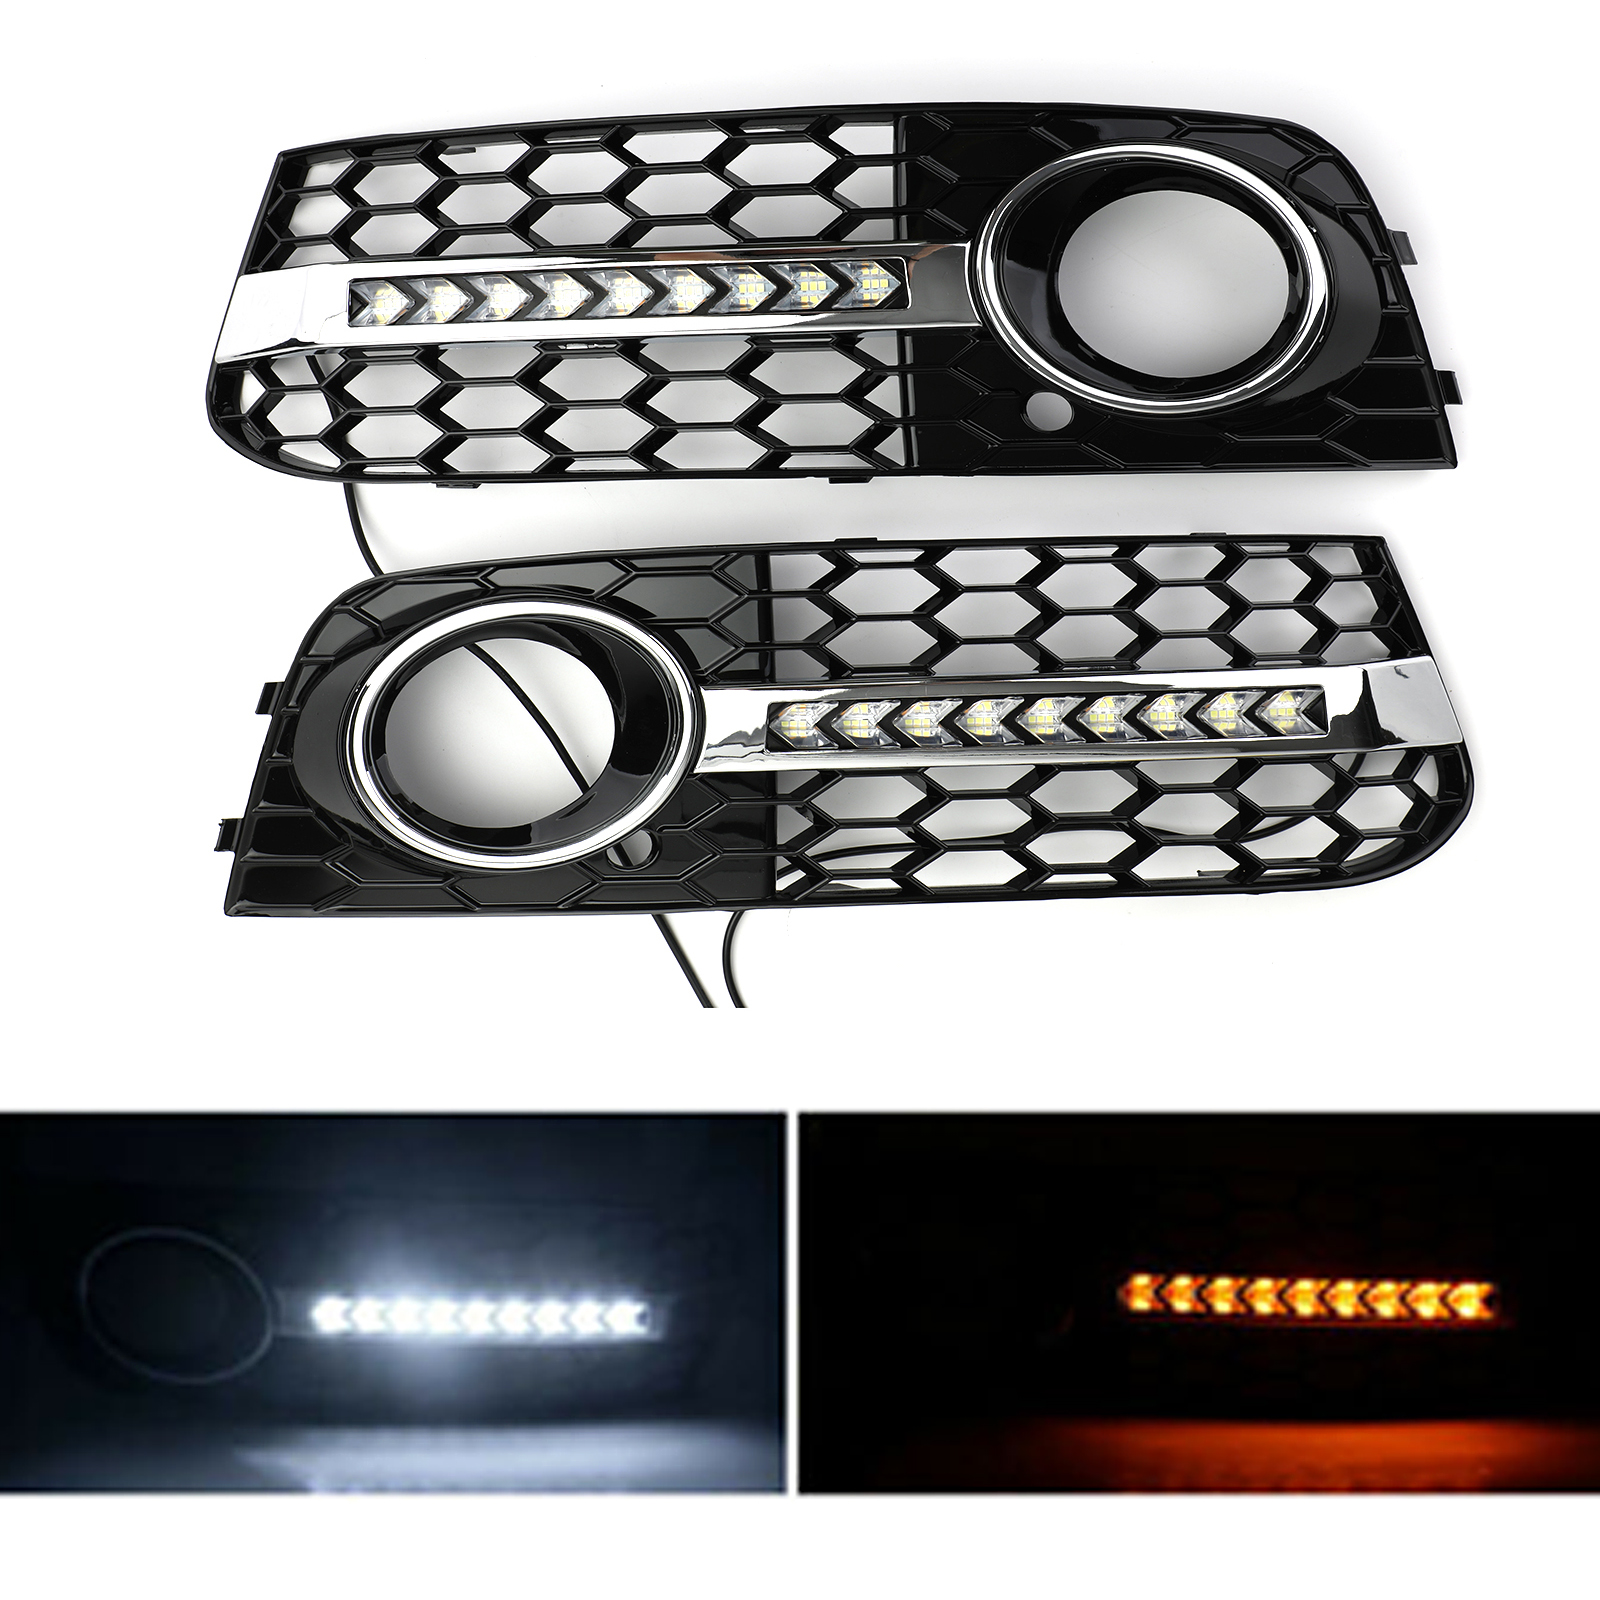 Areyourshop Flowing LED Honeycomb Mesh Grille Fog Light Turn Signal DRL For AUDI A4 B8 2009-2011 Fog Light Grille Car Auto Parts